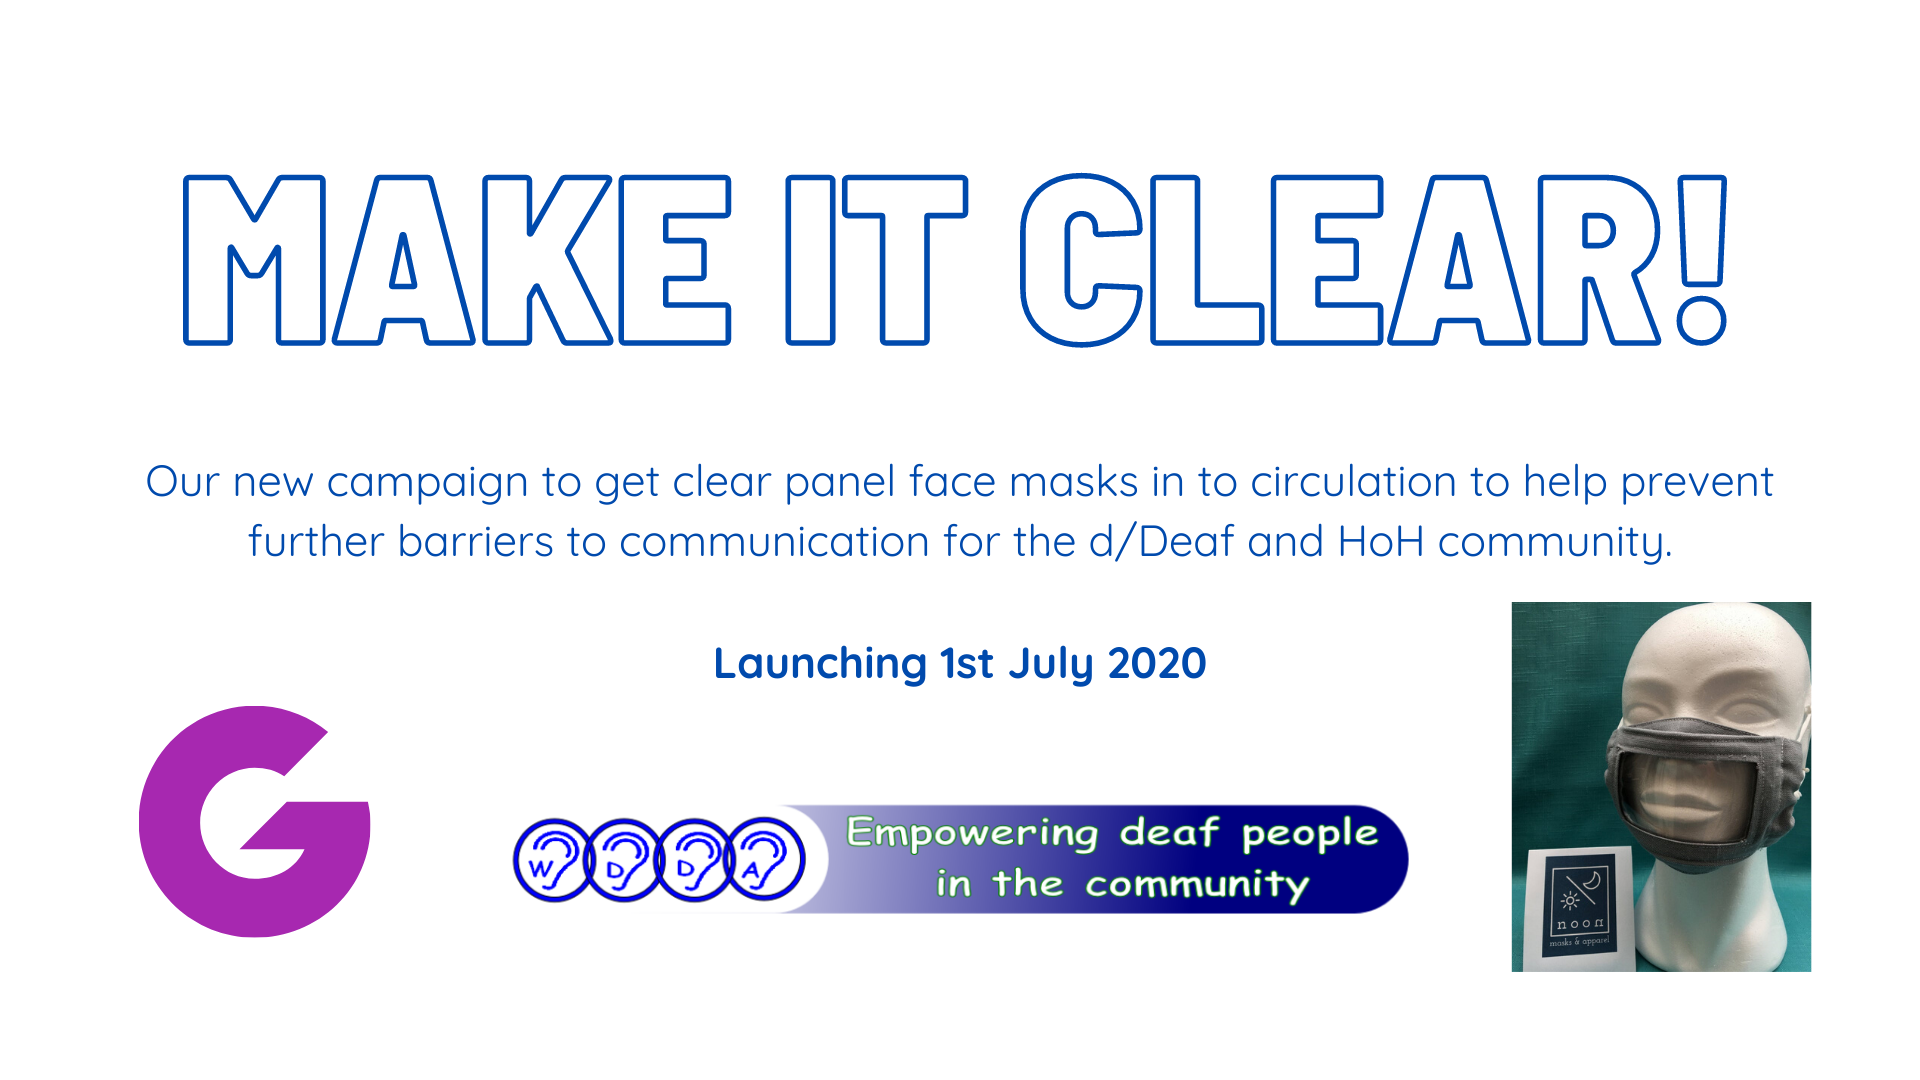 Launch of 'Make it Clear!' Campaign